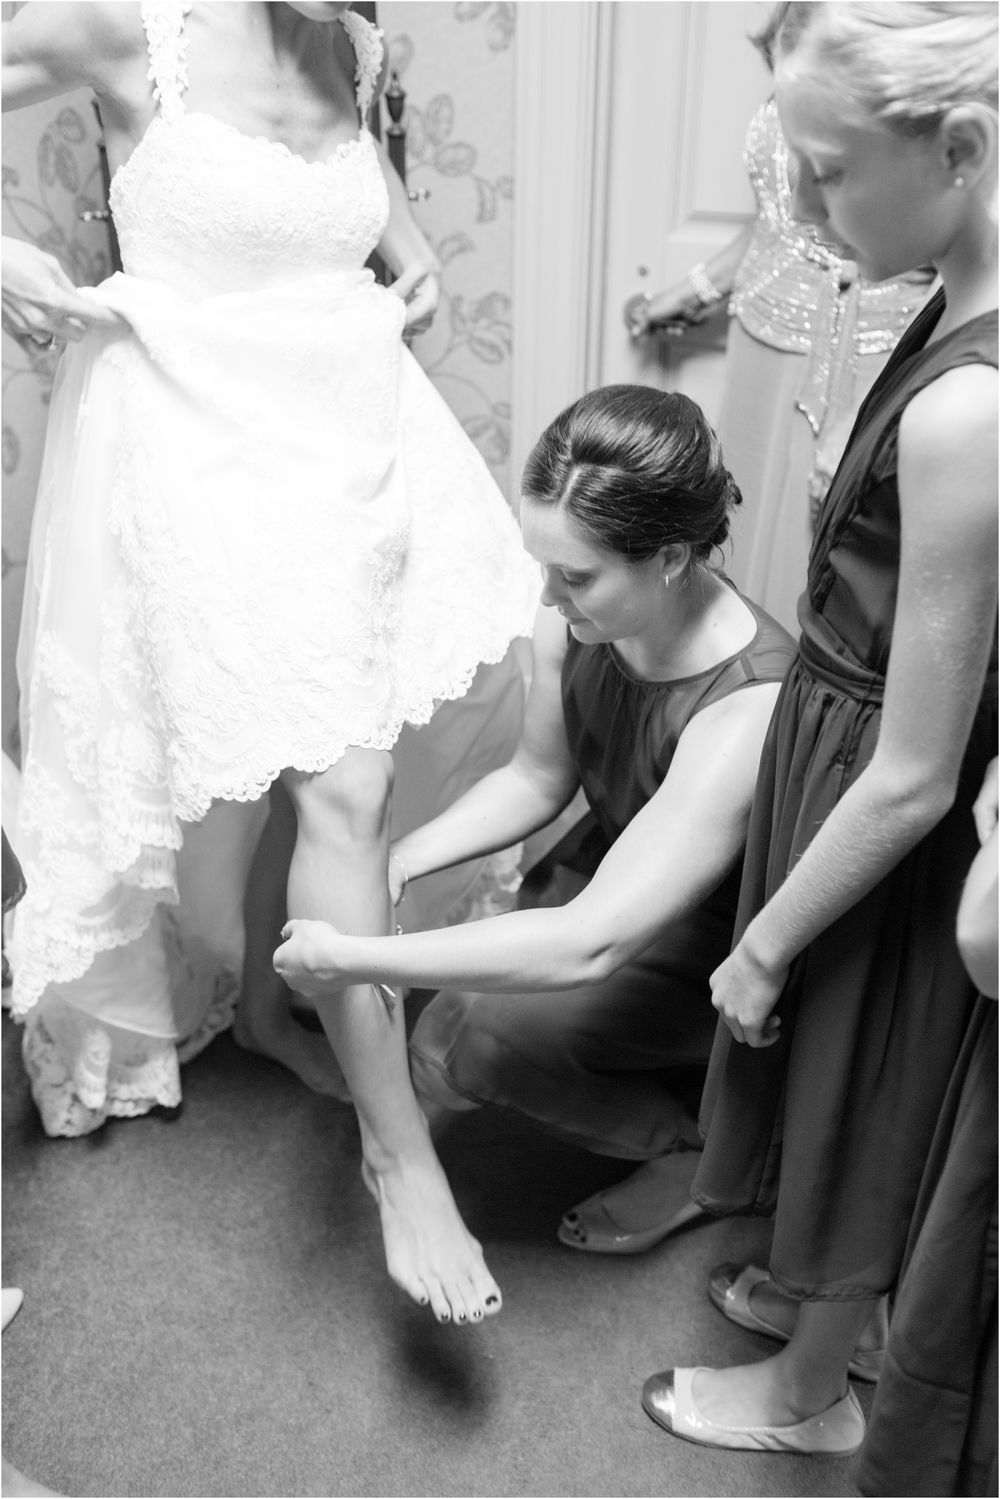 1-Getting-Ready-Burns-Wedding-199.jpg